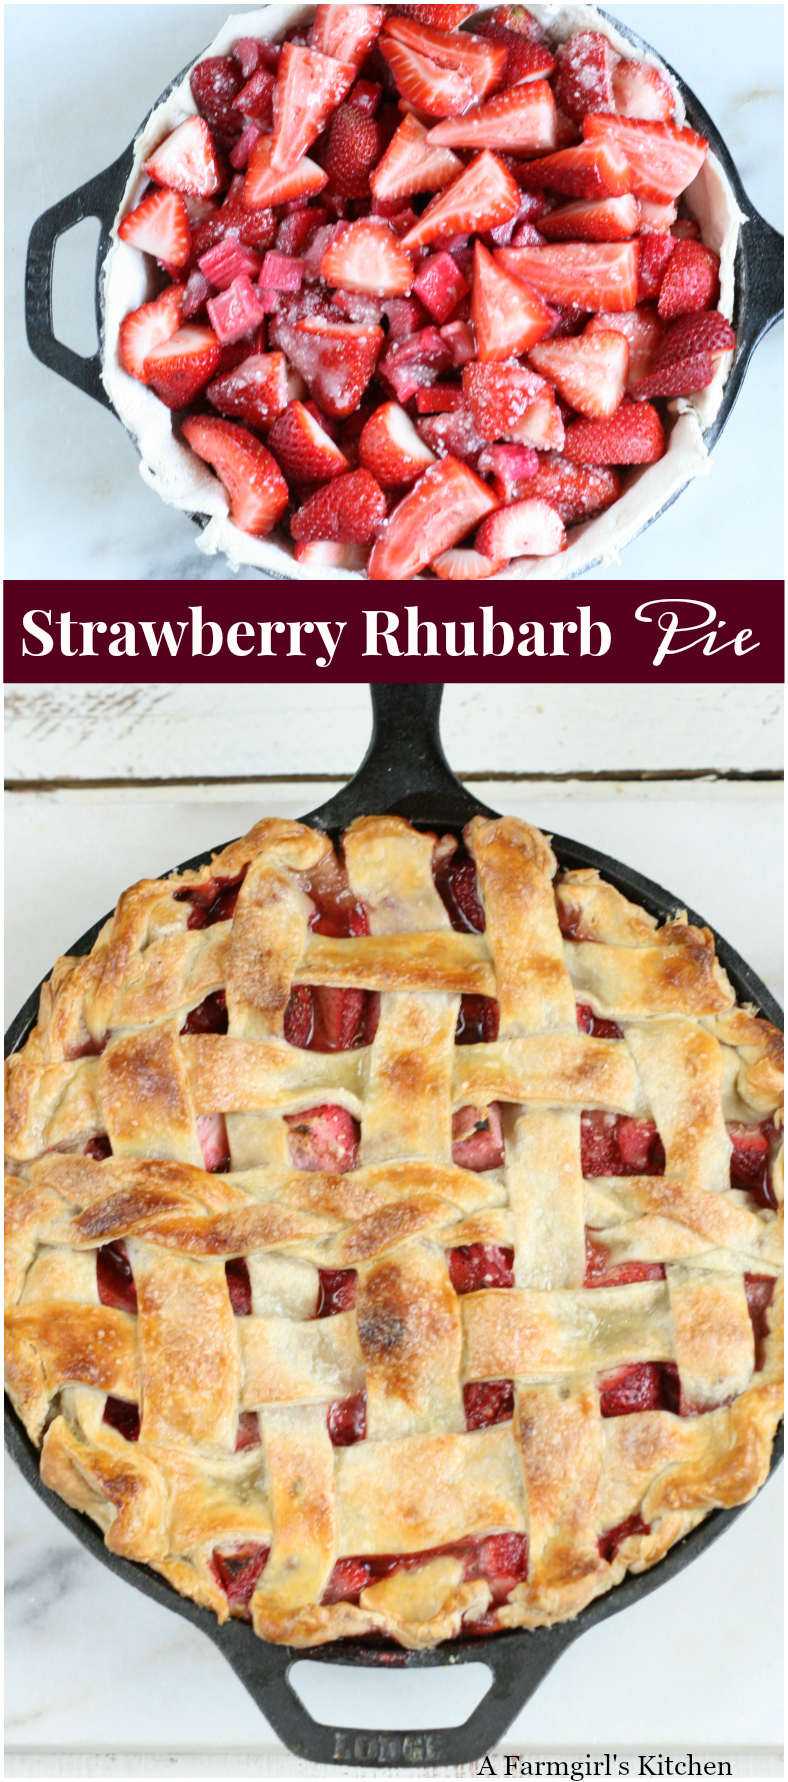 Looking for Grandma's Strawberry Rhubarb Pie Recipe and can't find it?! Try my recipe using simple ingredients and homemade pie crust. #recipe #foodblogger #pie #strawberryrhubarb